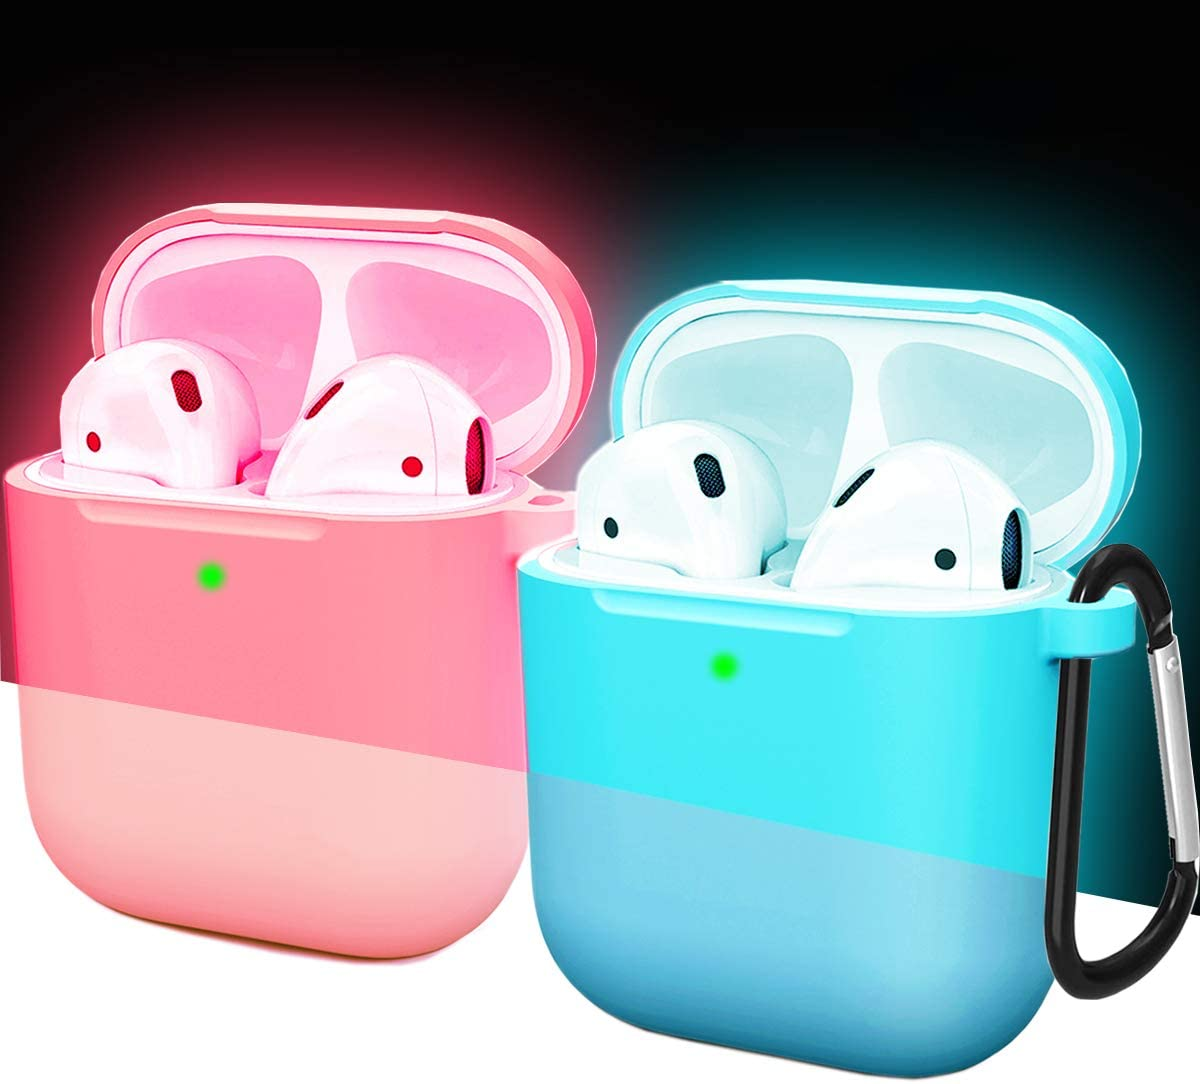 Compatible AirPods Case Cover Silicone Protective Skin for Apple Airpod Case 2&1 (2 Pack) Nightglow Pink/ Nightglow Blue